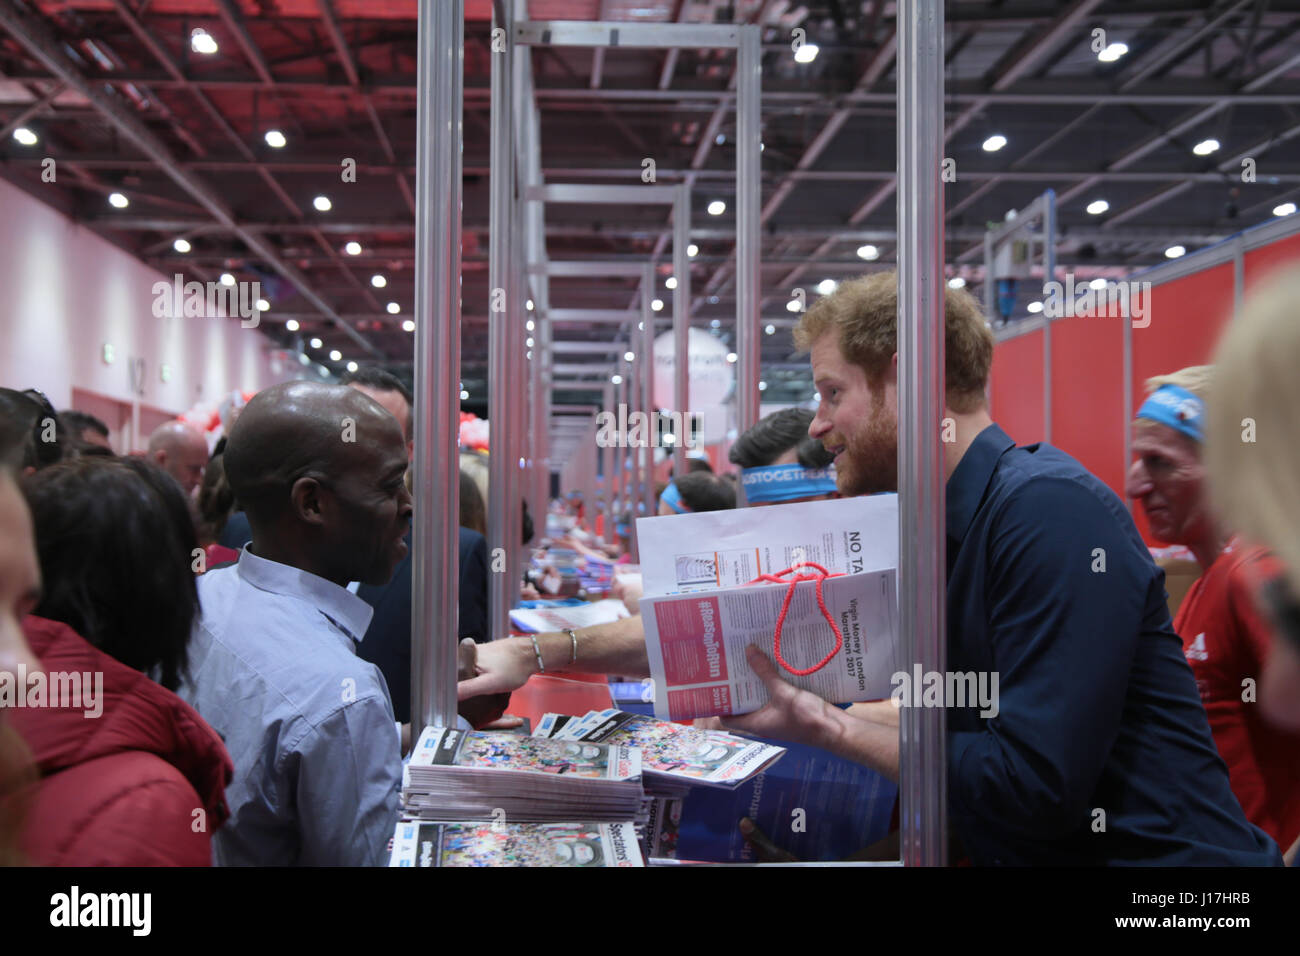 London, UK. 19th Apr, 2017. London Excel Prince Harry at the opening of the 2017 Virgin Money London Marathon Expo Stock Photo